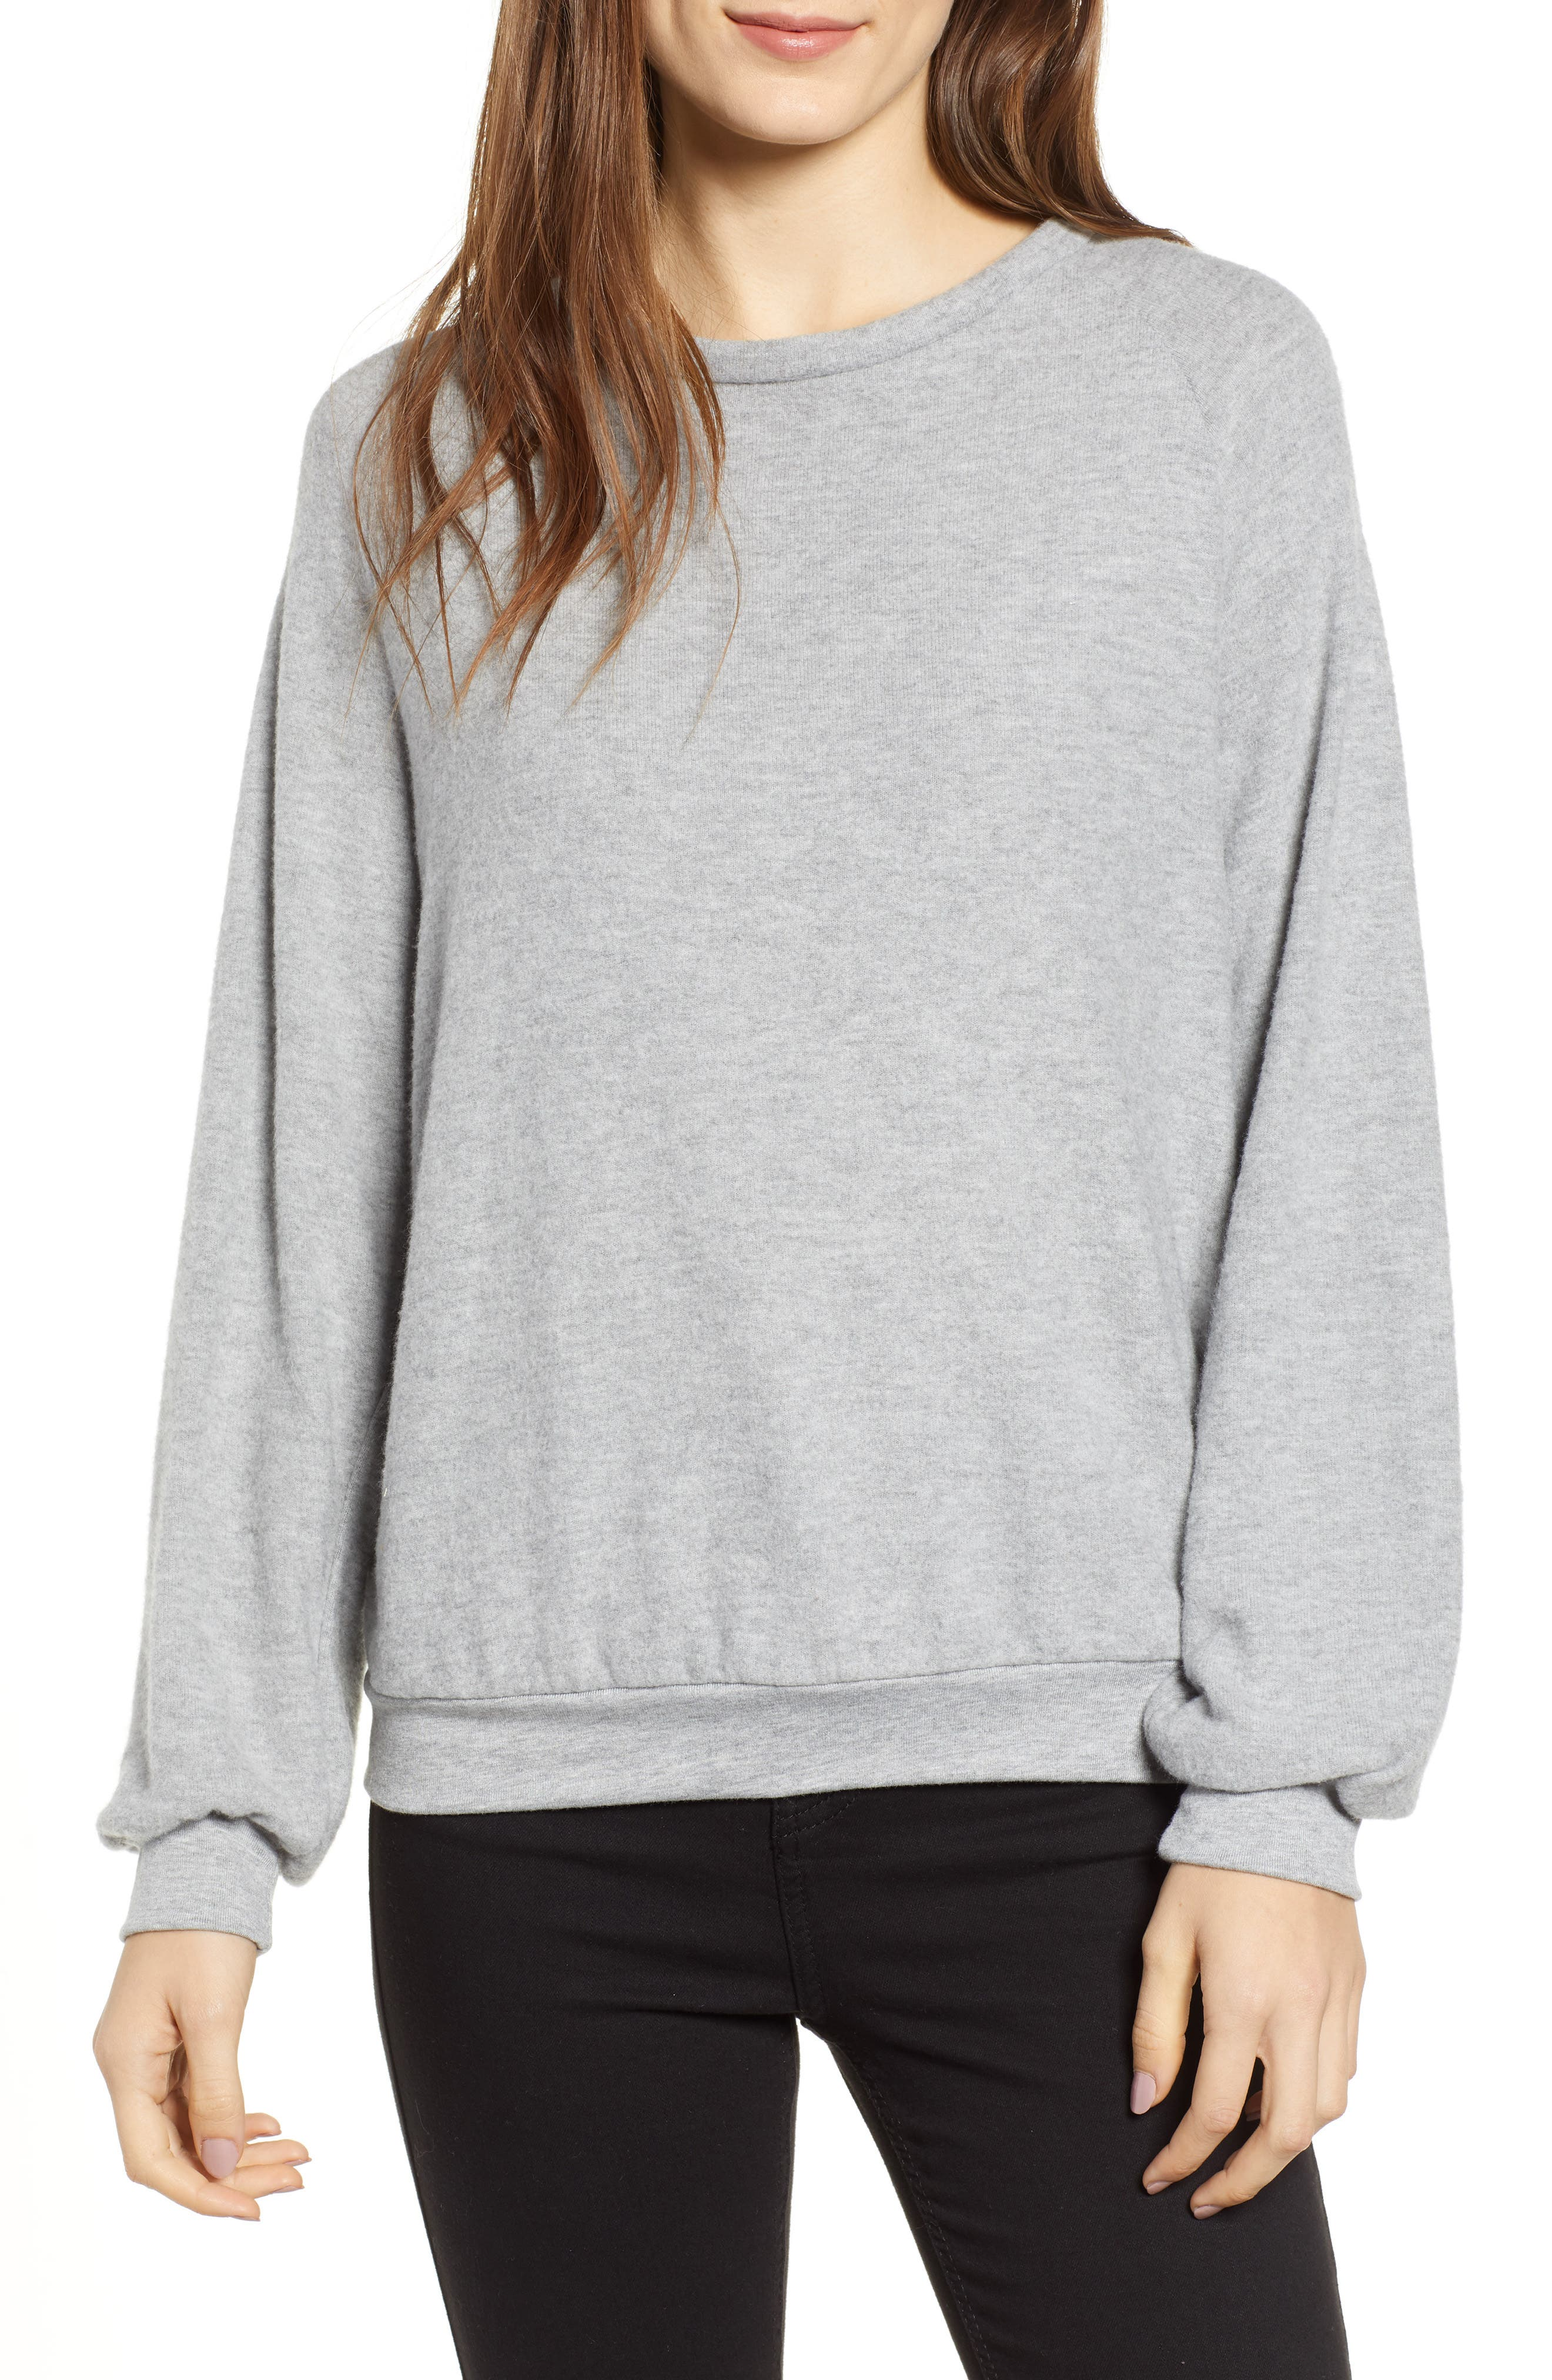 PROJECT SOCIAL T After Hours Open Back Sweatshirt in Heather Grey